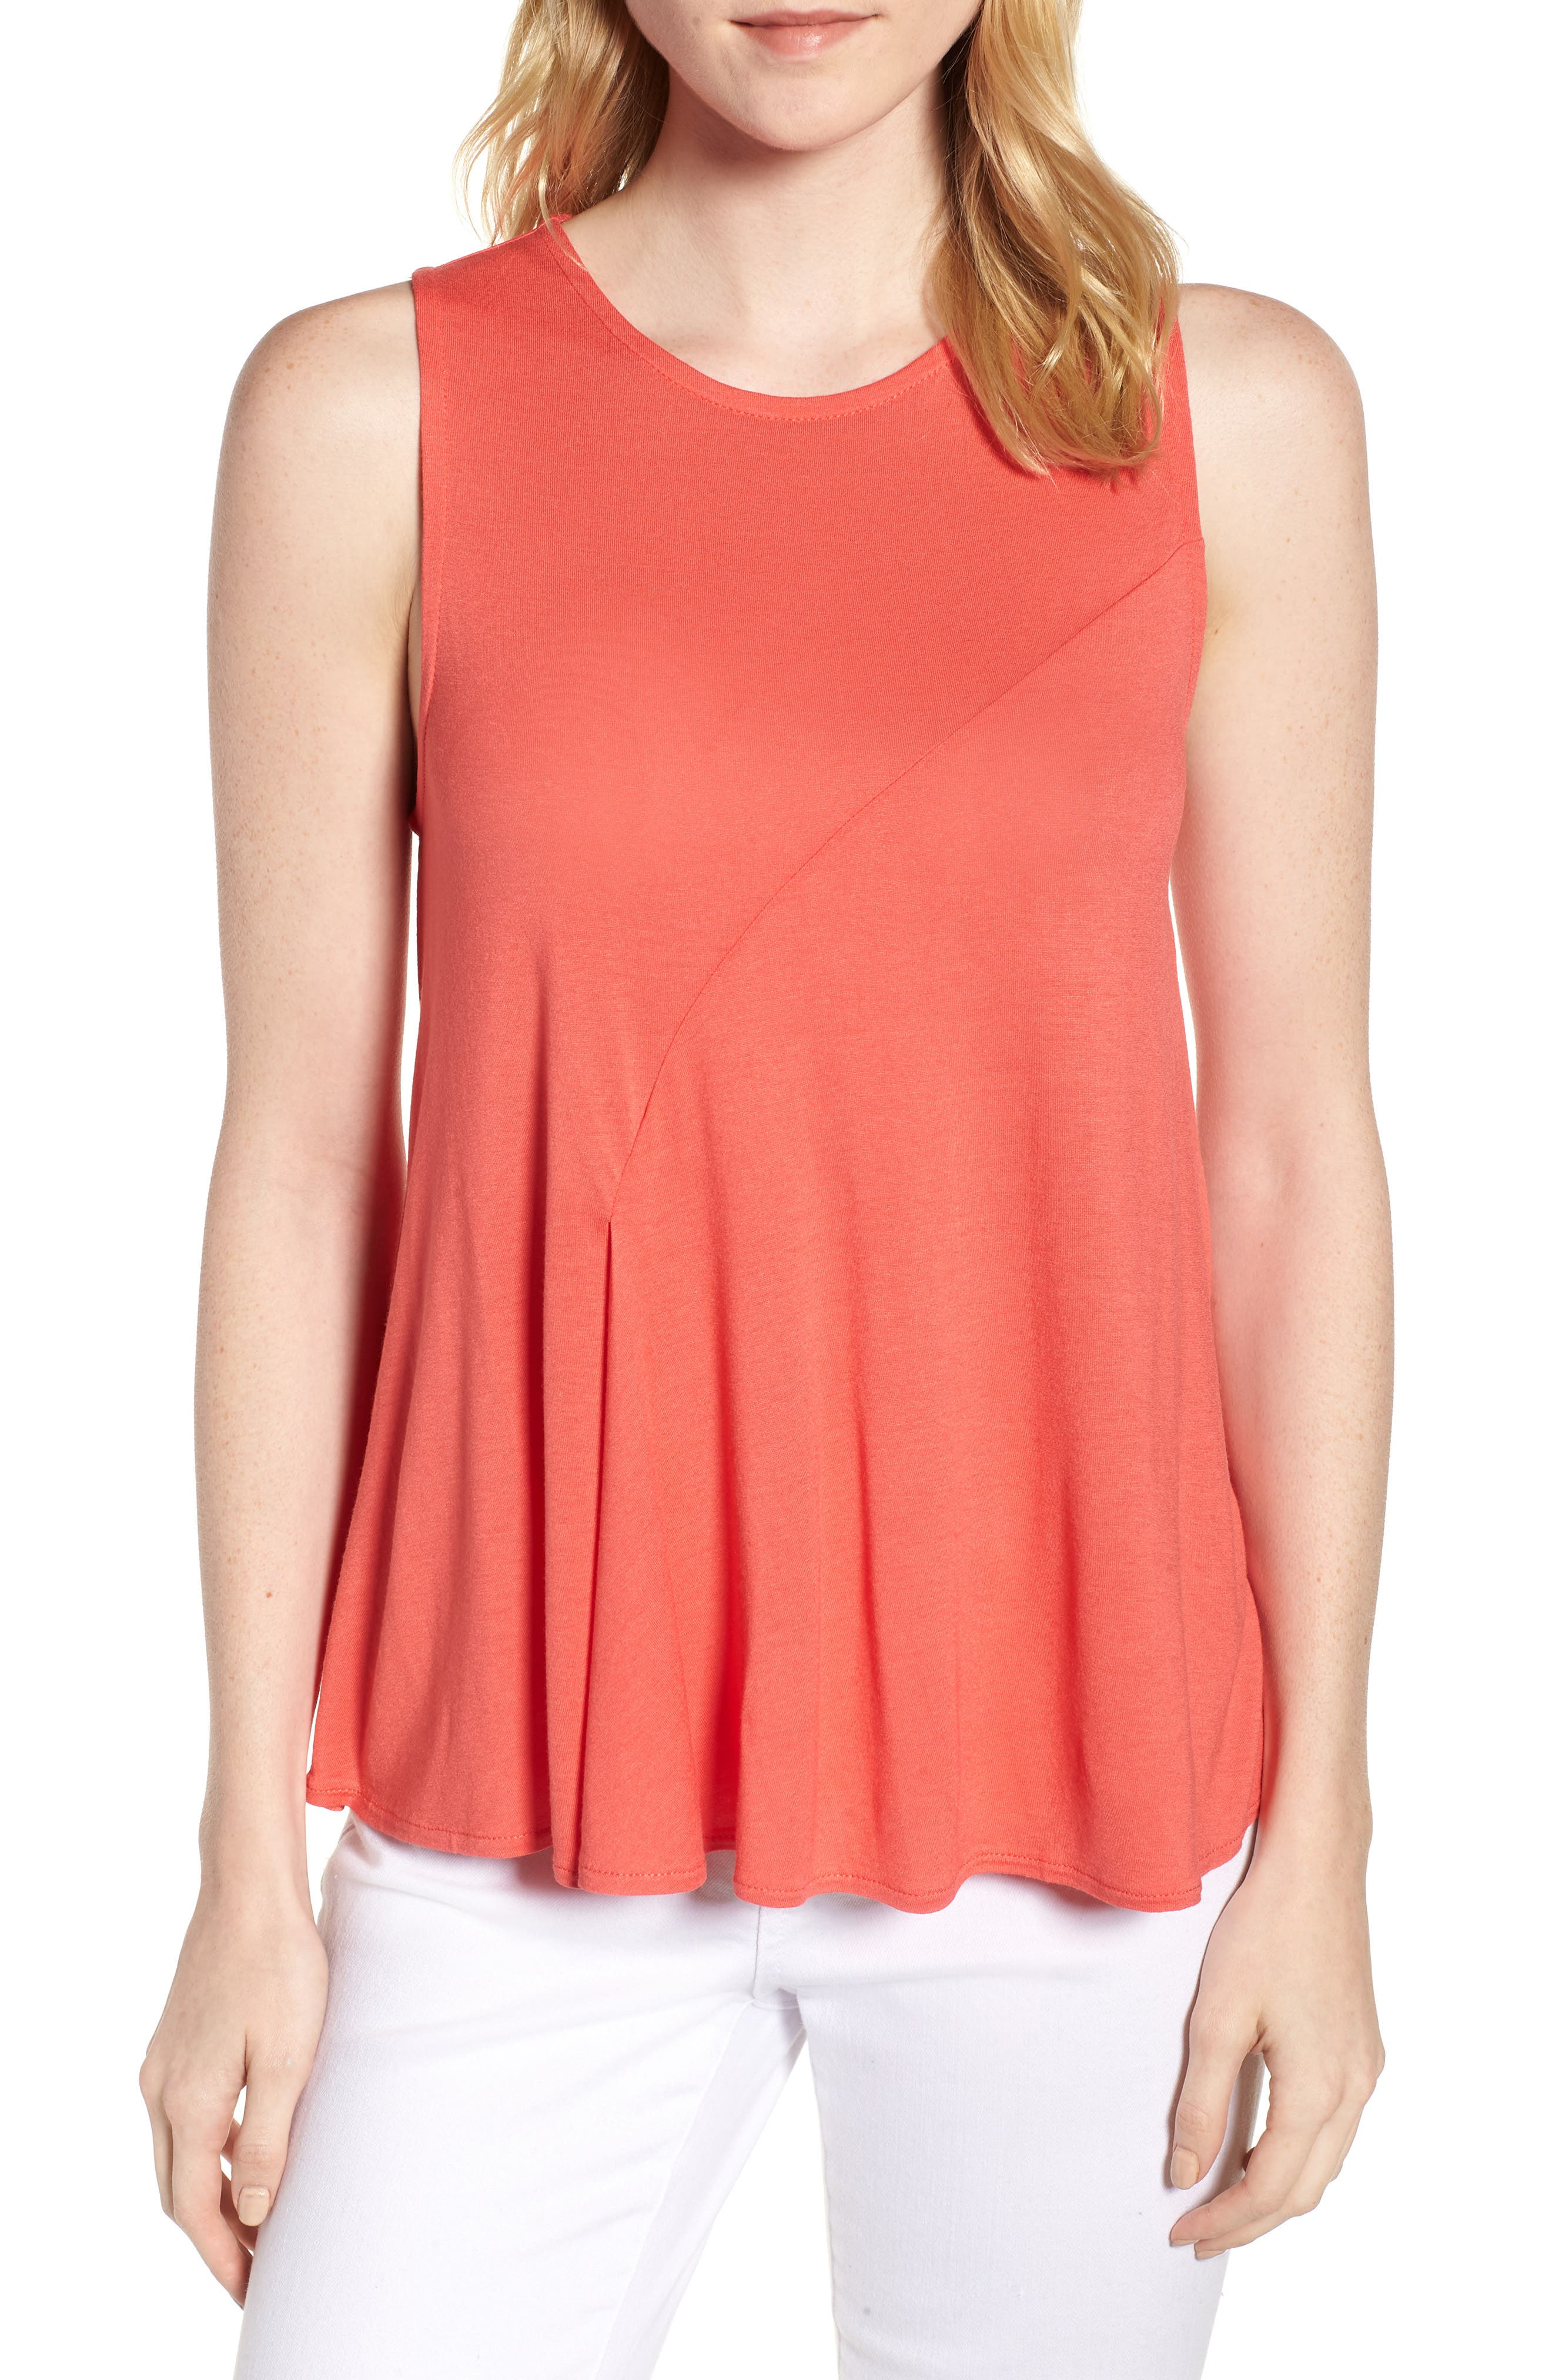 J.Crew Pleated Swing Tank Top,                             Main thumbnail 1, color,                             Coral